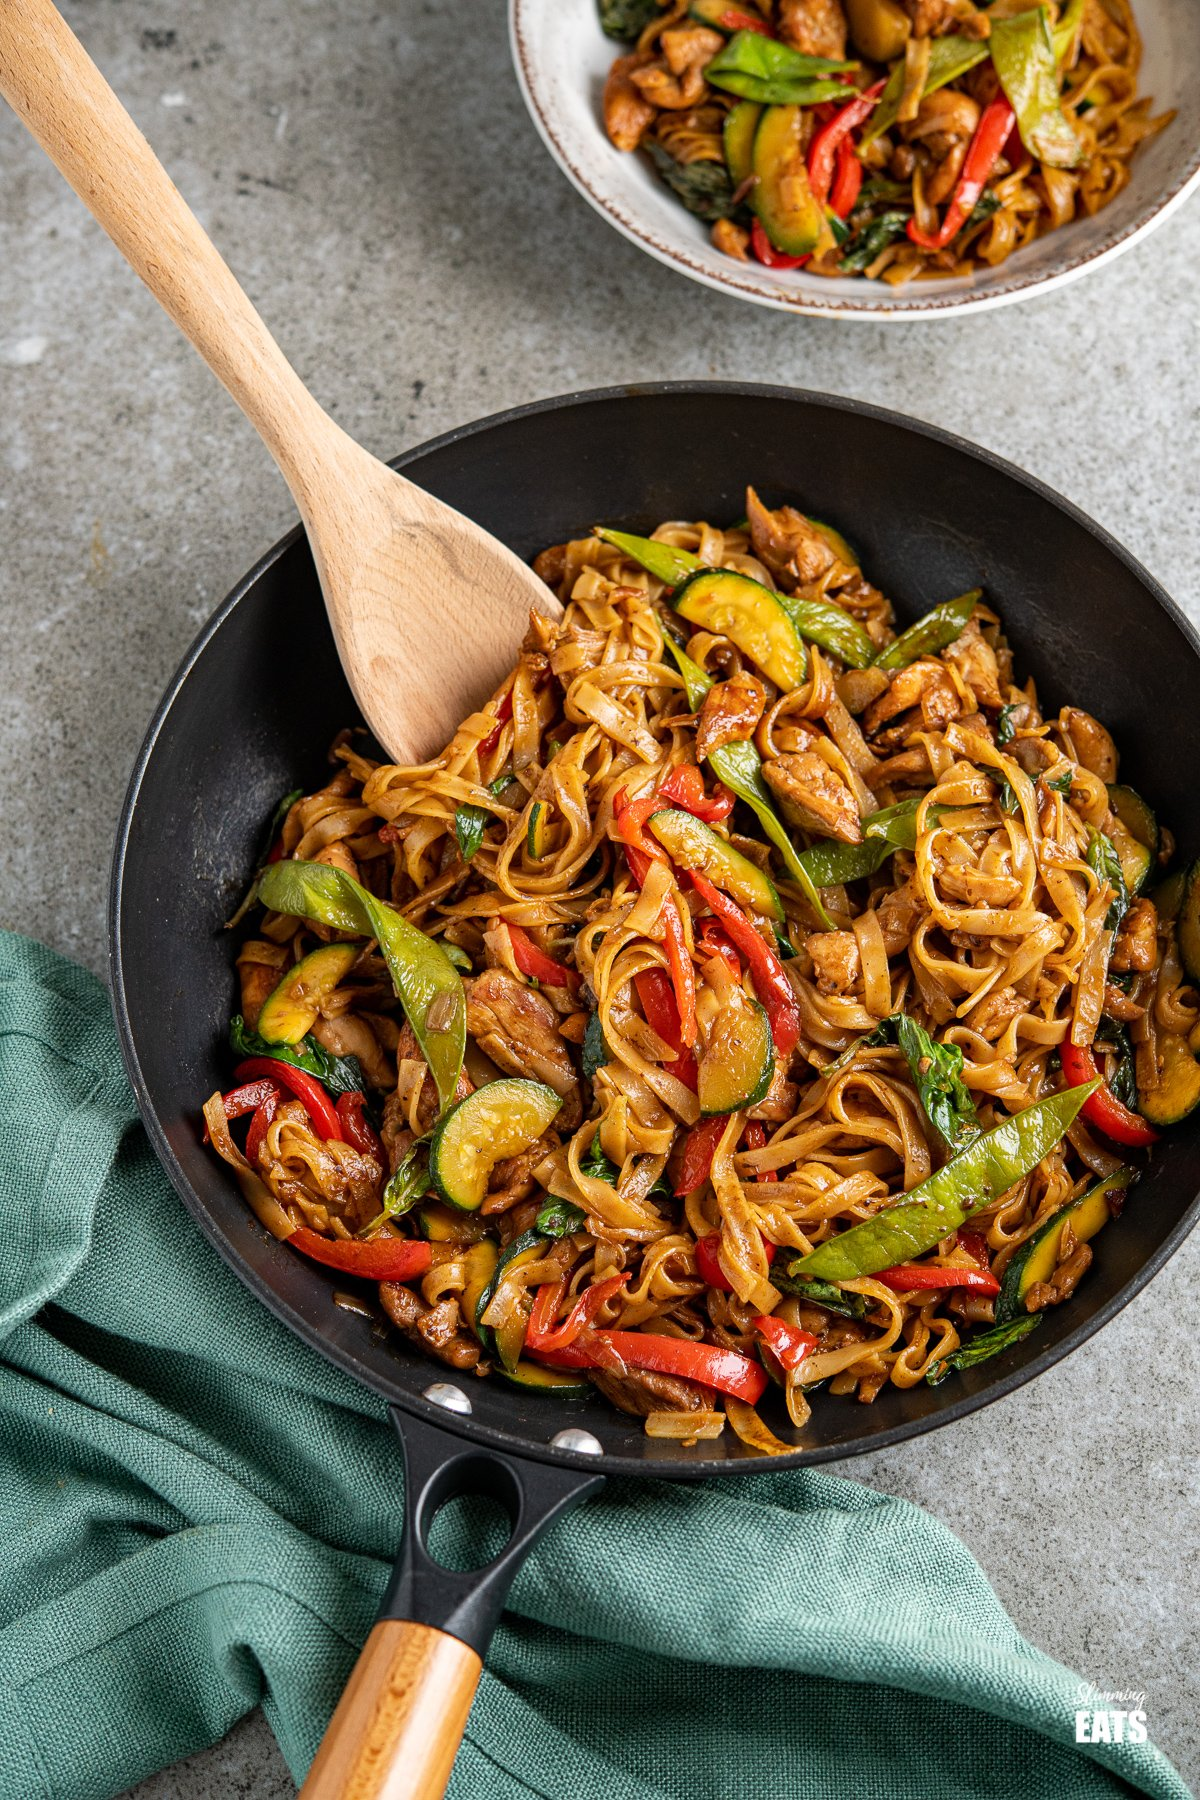 drunken noodles - chicken, vegetables and rice noodles in a spicy flavoursome sauce in a black pan with a wooden handle